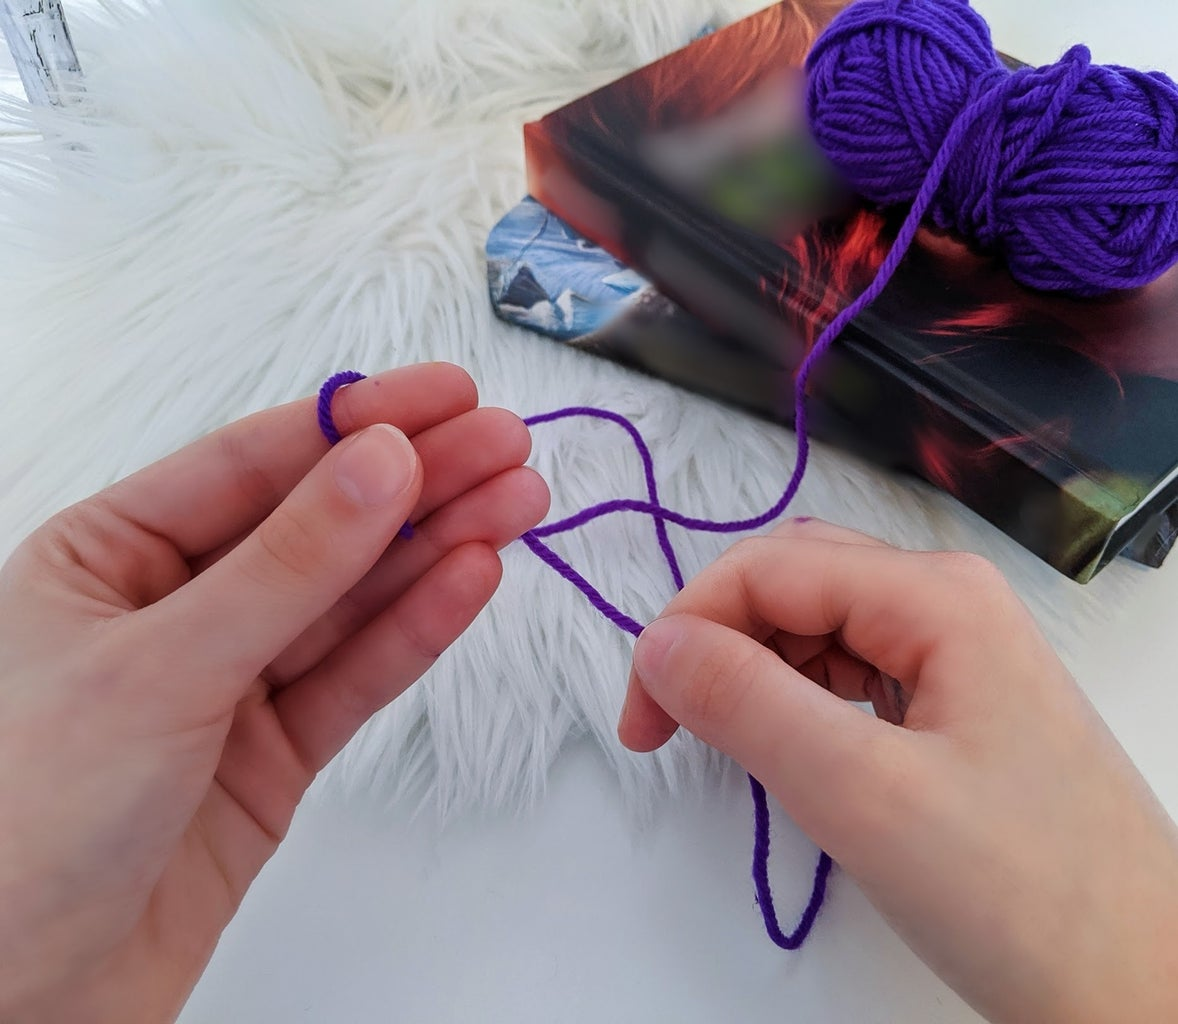 Wrapping the Yarn